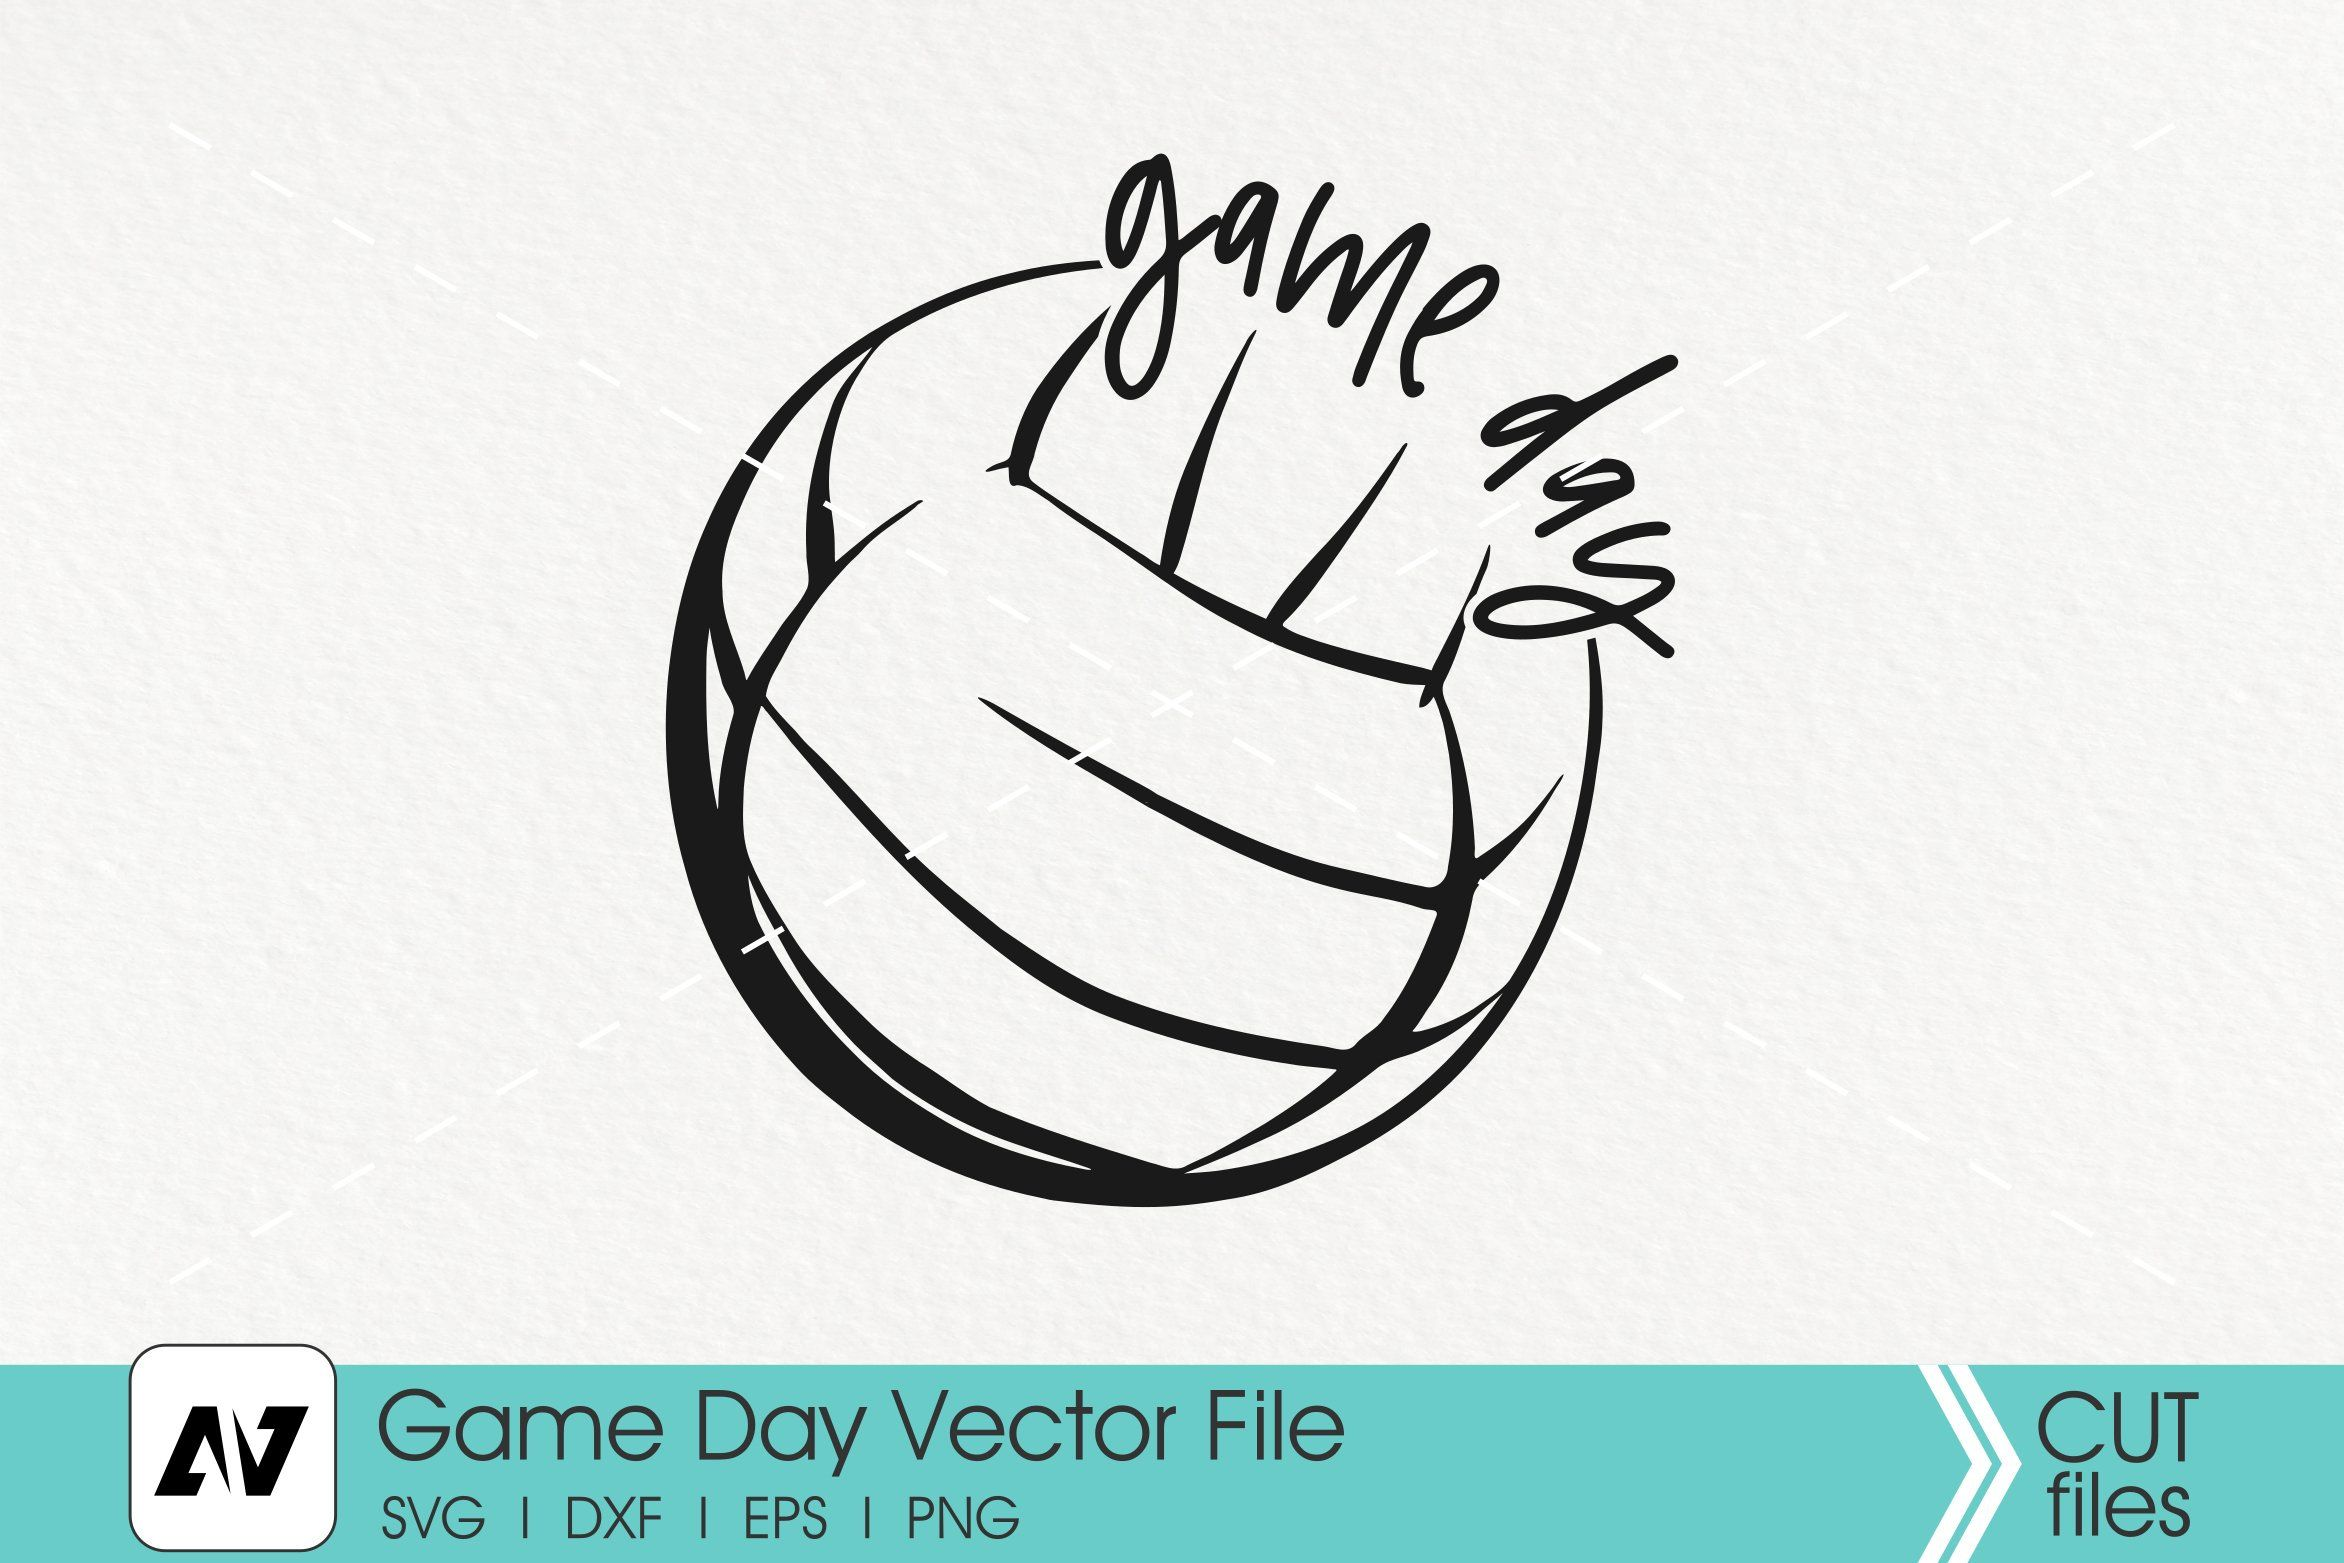 Game Day Svg Game Day Clip Art Volleyball Svg Volleyball Clip Art Volleyball Graphics Game Day Graphics Svg Fil In 2020 Svg Svg Files For Cricut Volleyball Games